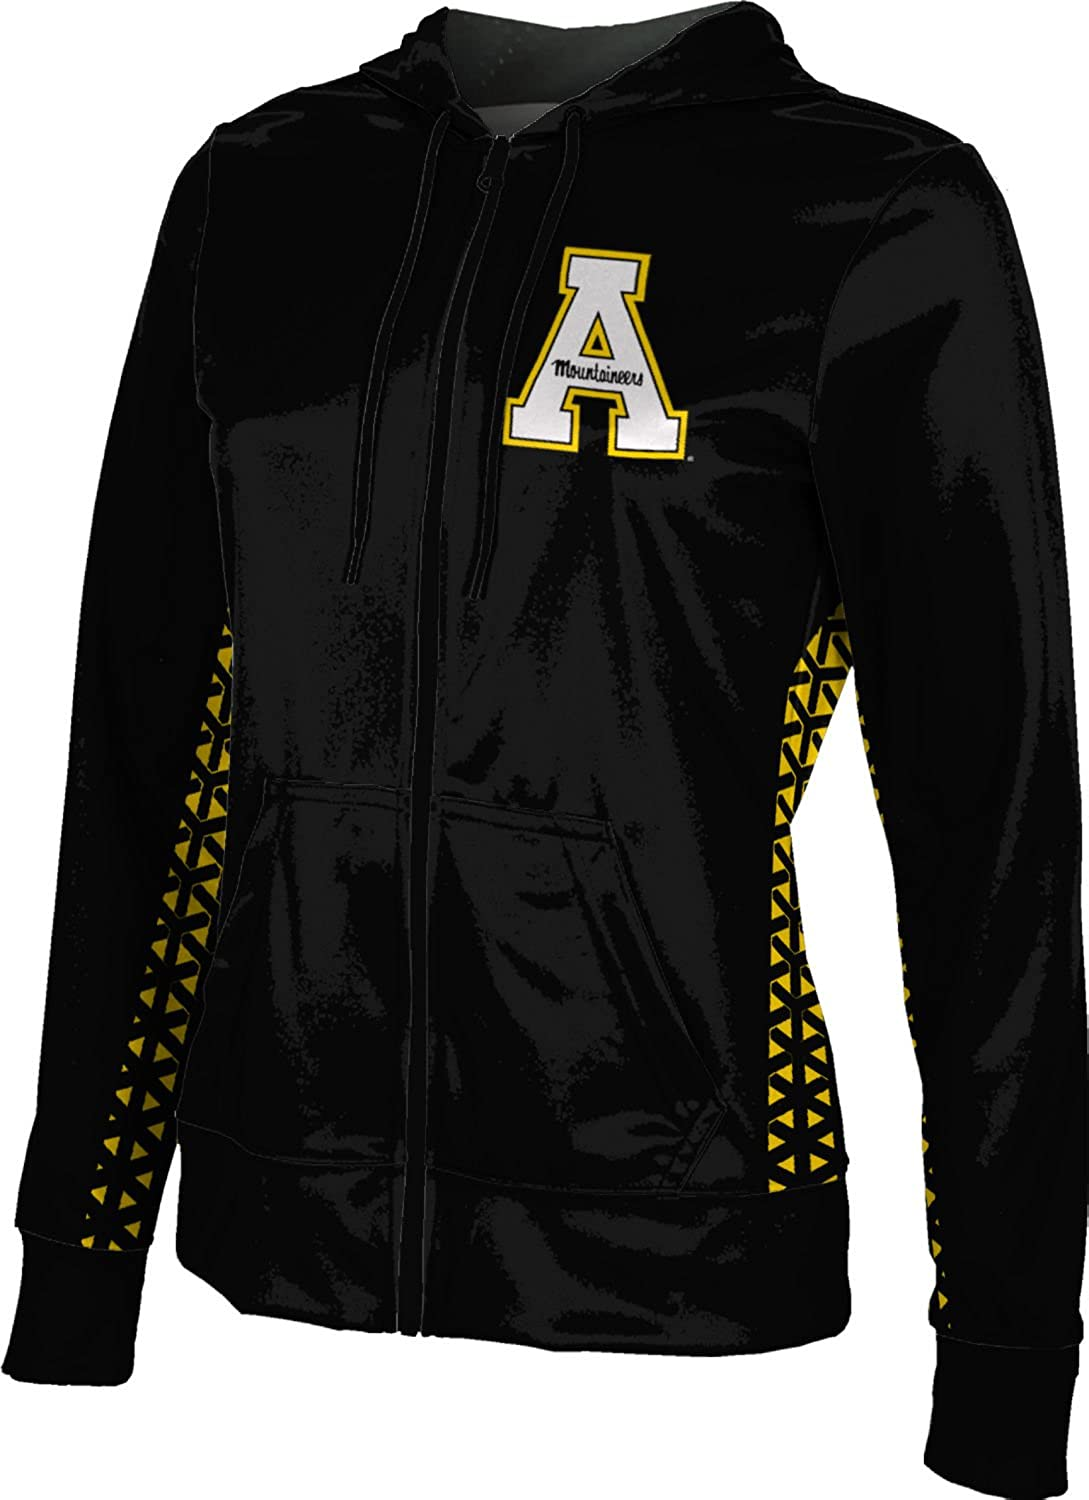 ProSphere Appalachian State University Girls Zipper Hoodie School Spirit Sweatshirt Geometric